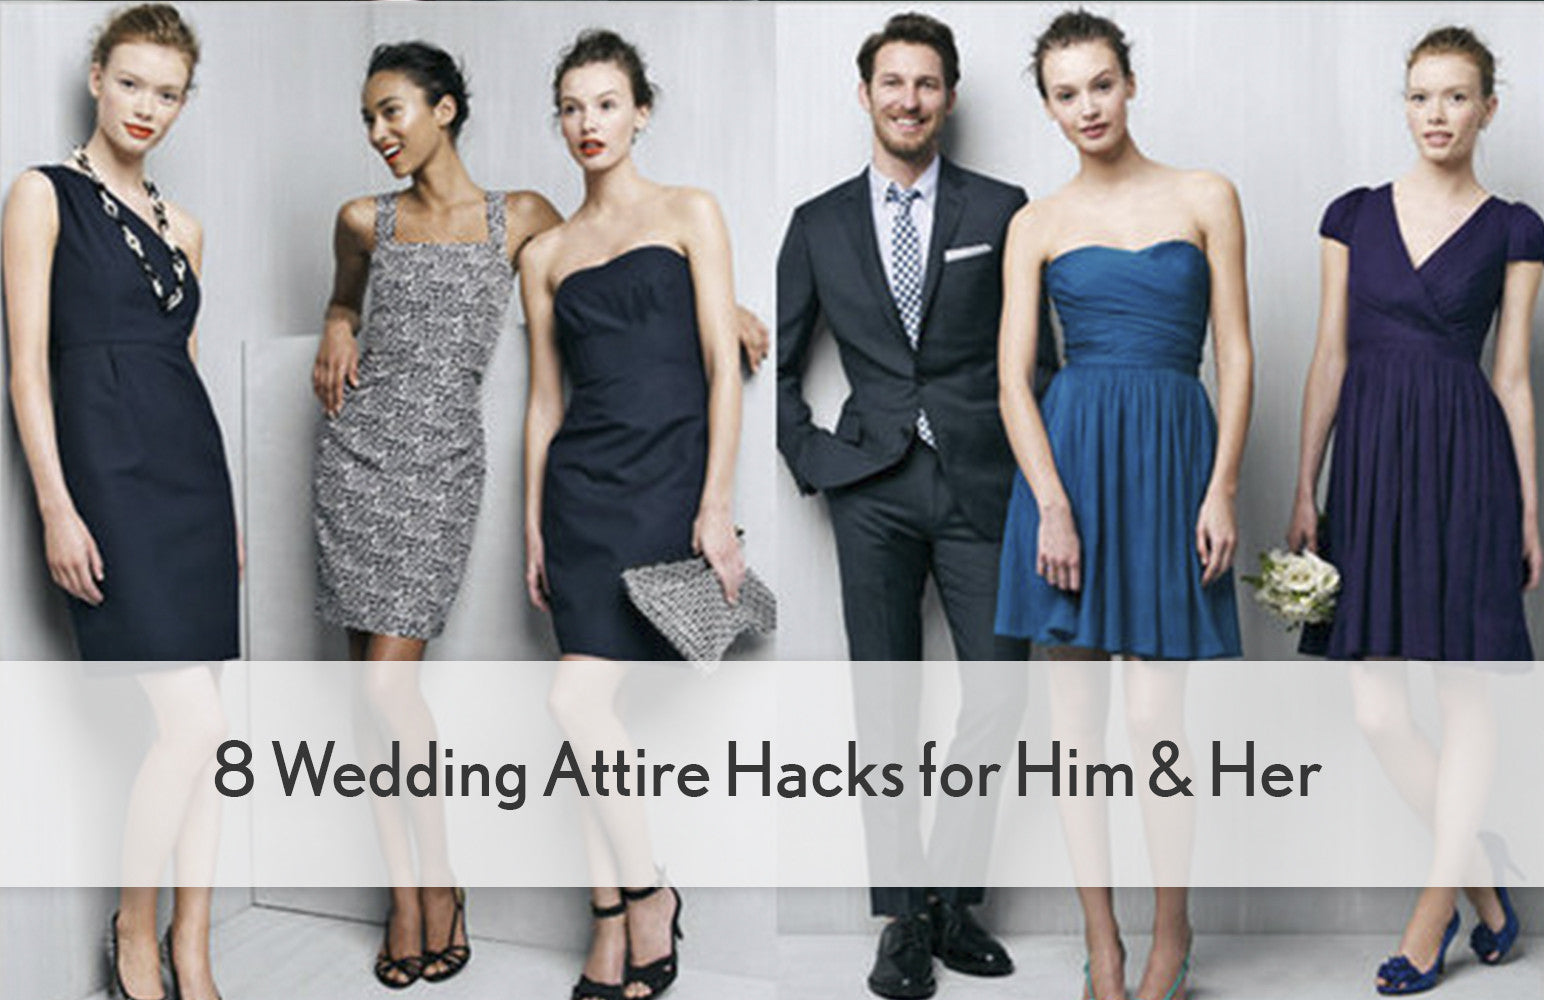 8 Wedding Attire Hacks for Him & Her